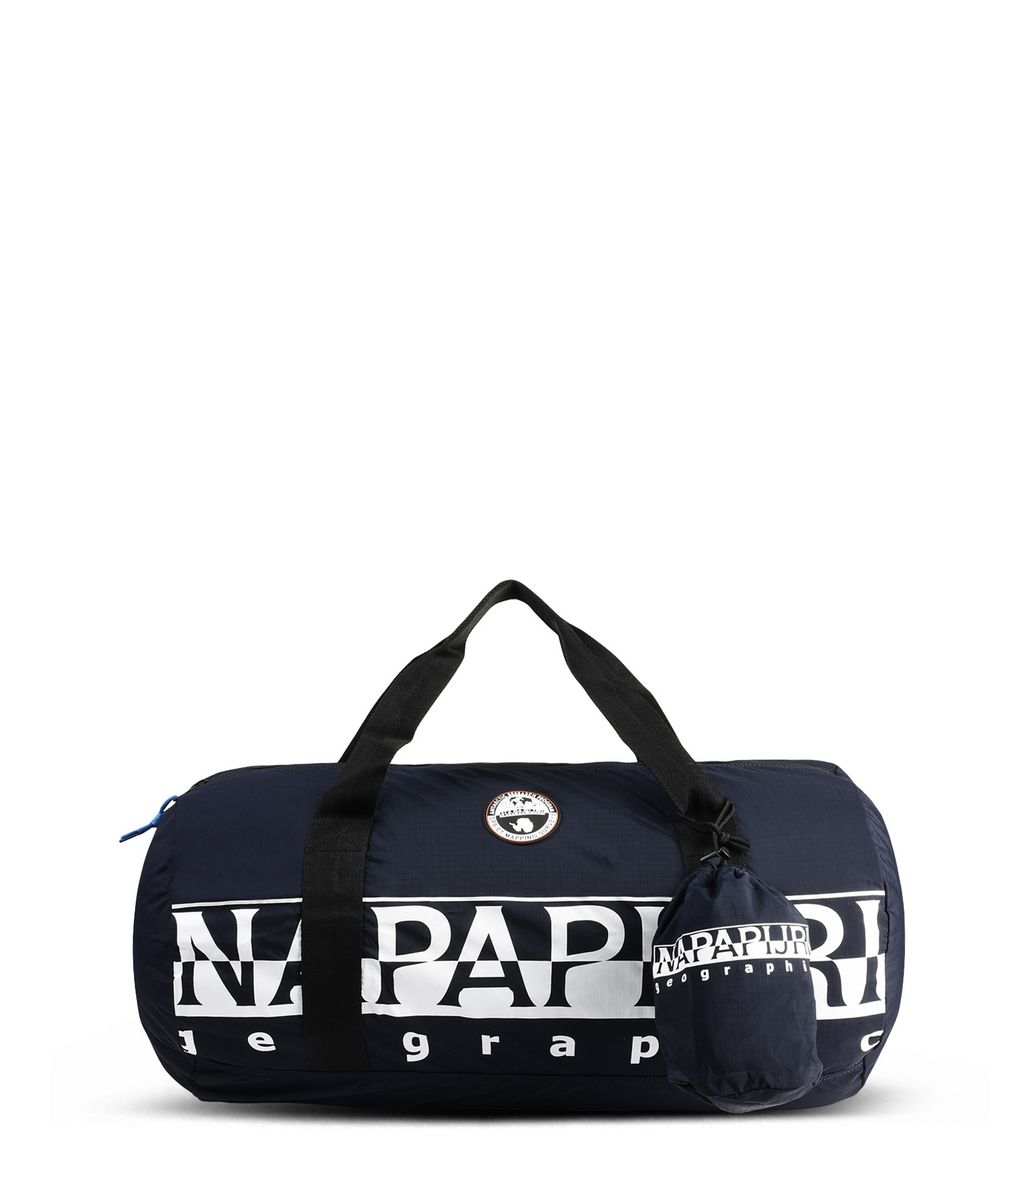 NAPAPIJRI BERING PACK 48LT  TRAVEL BAG,DARK BLUE